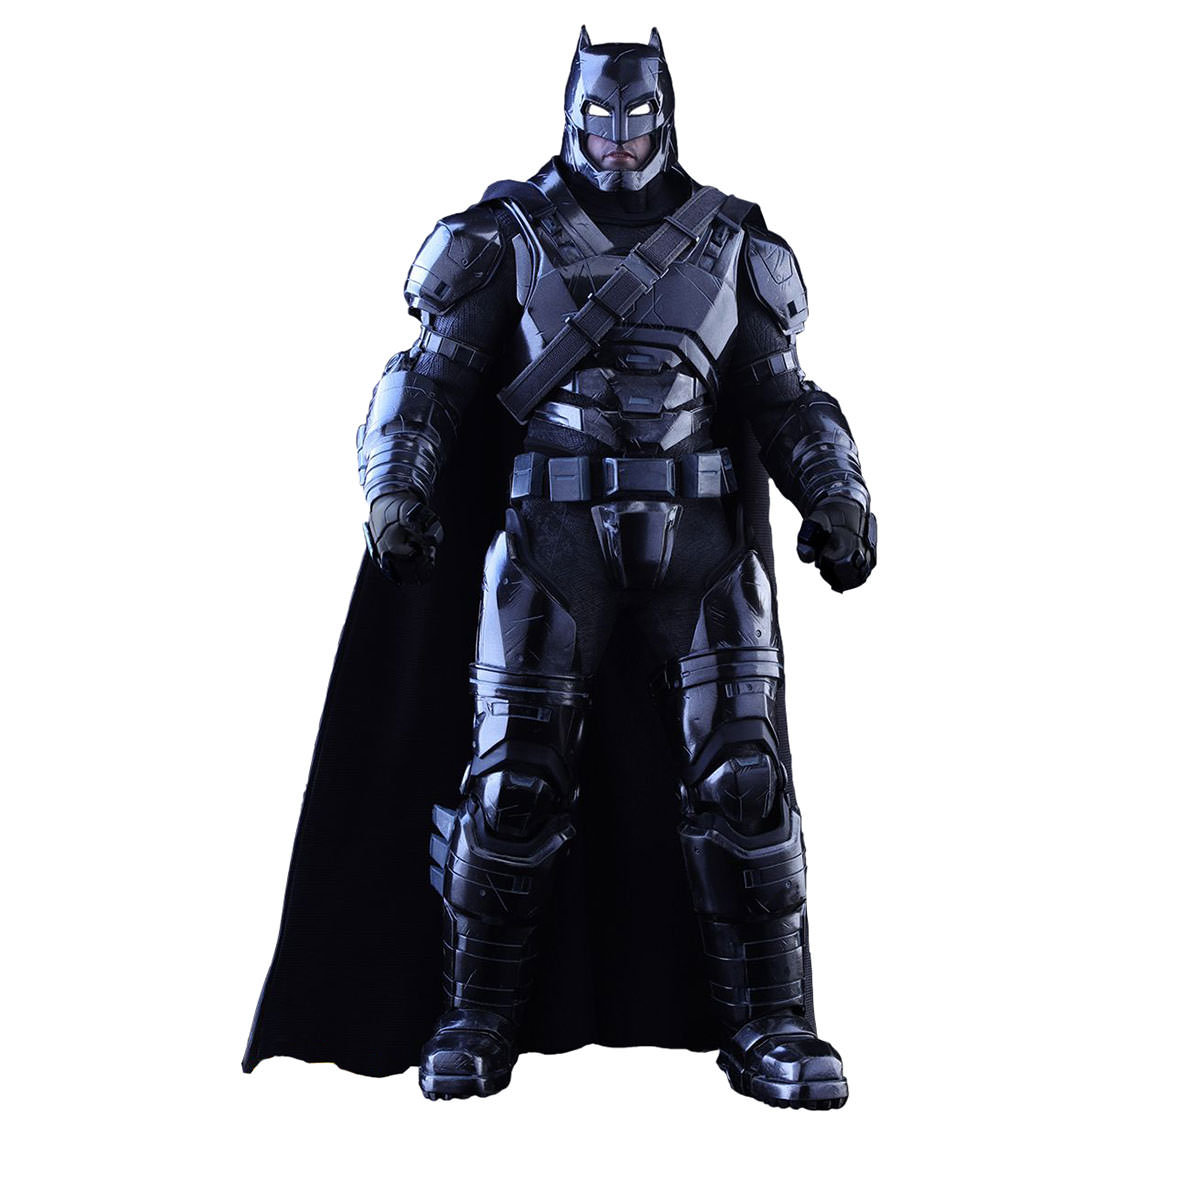 Hot Toys Batman vs Superman - Armored Batman (Black Chrome Version) 1/6th Scale Collectible Figure